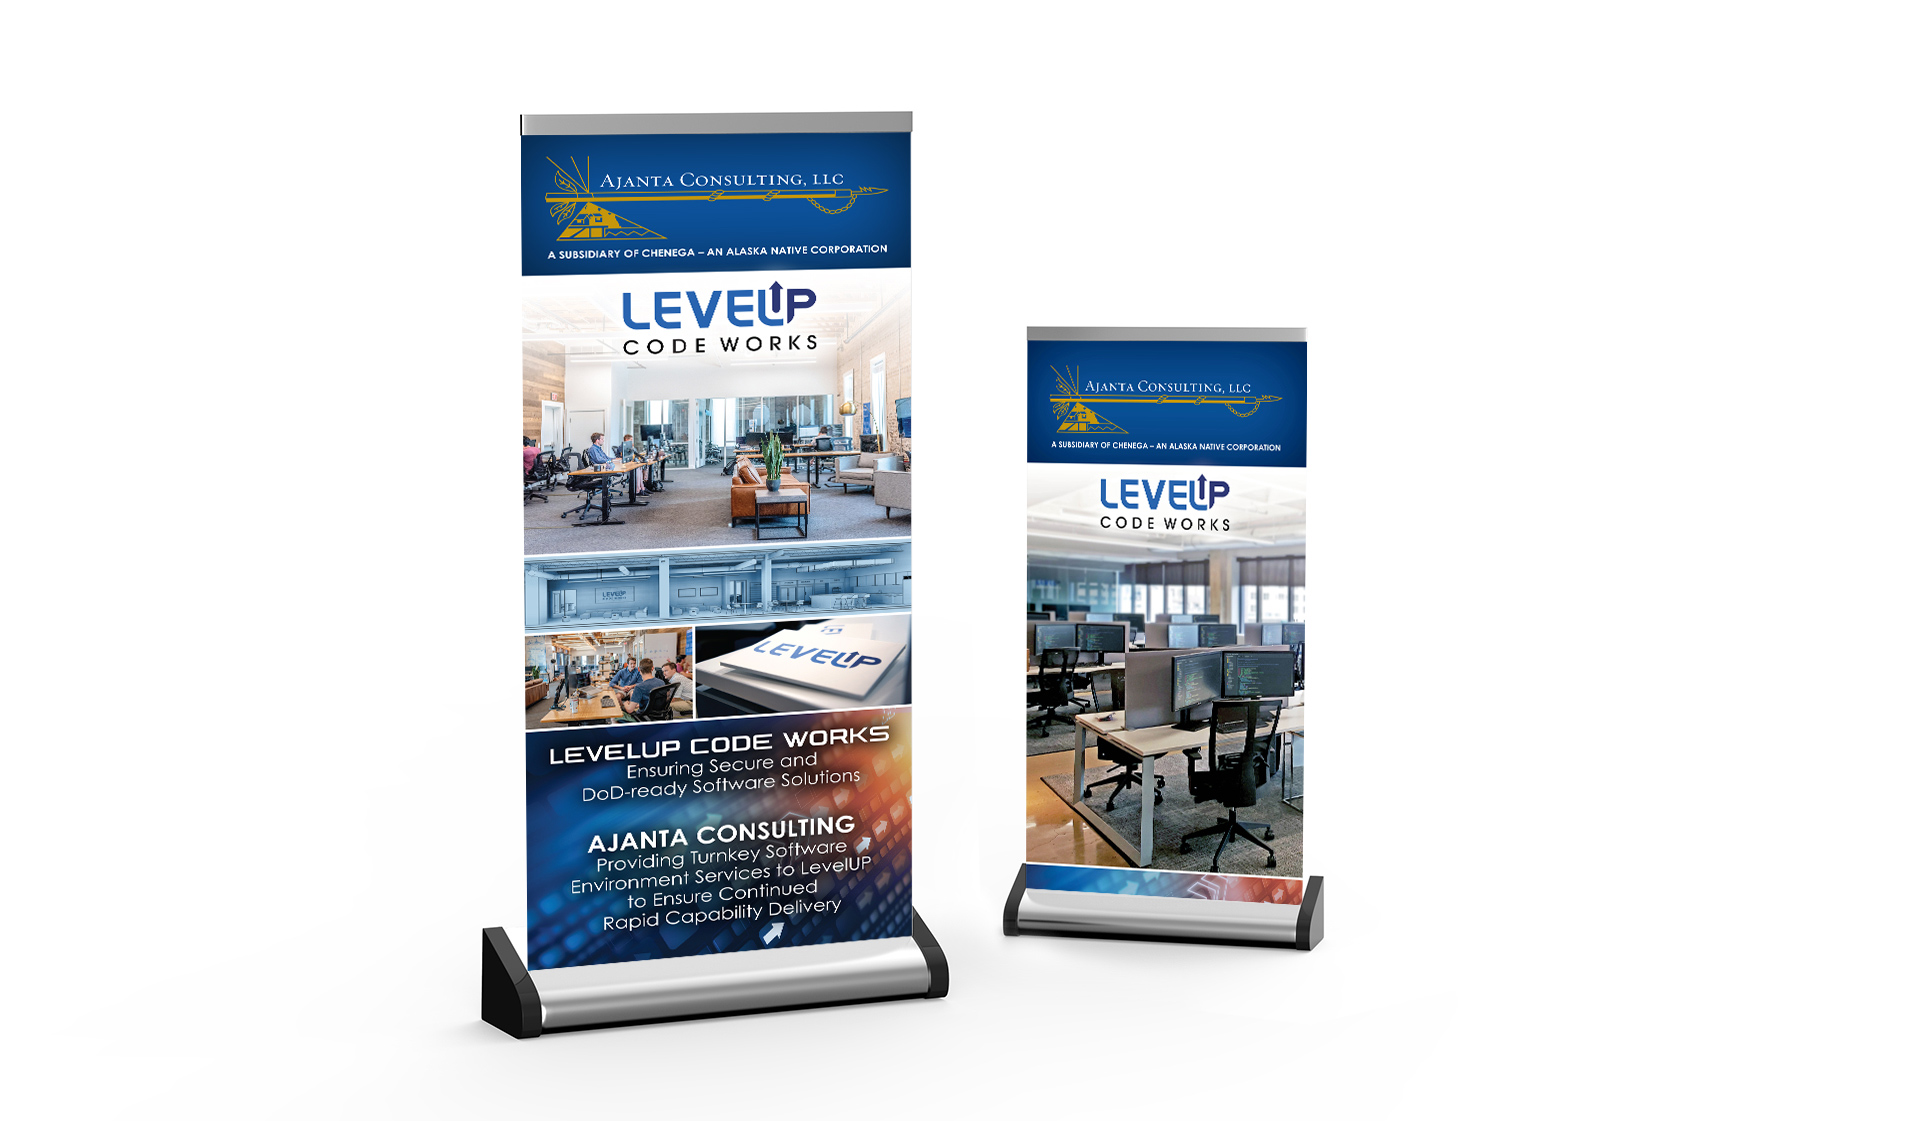 LevelUp Banners